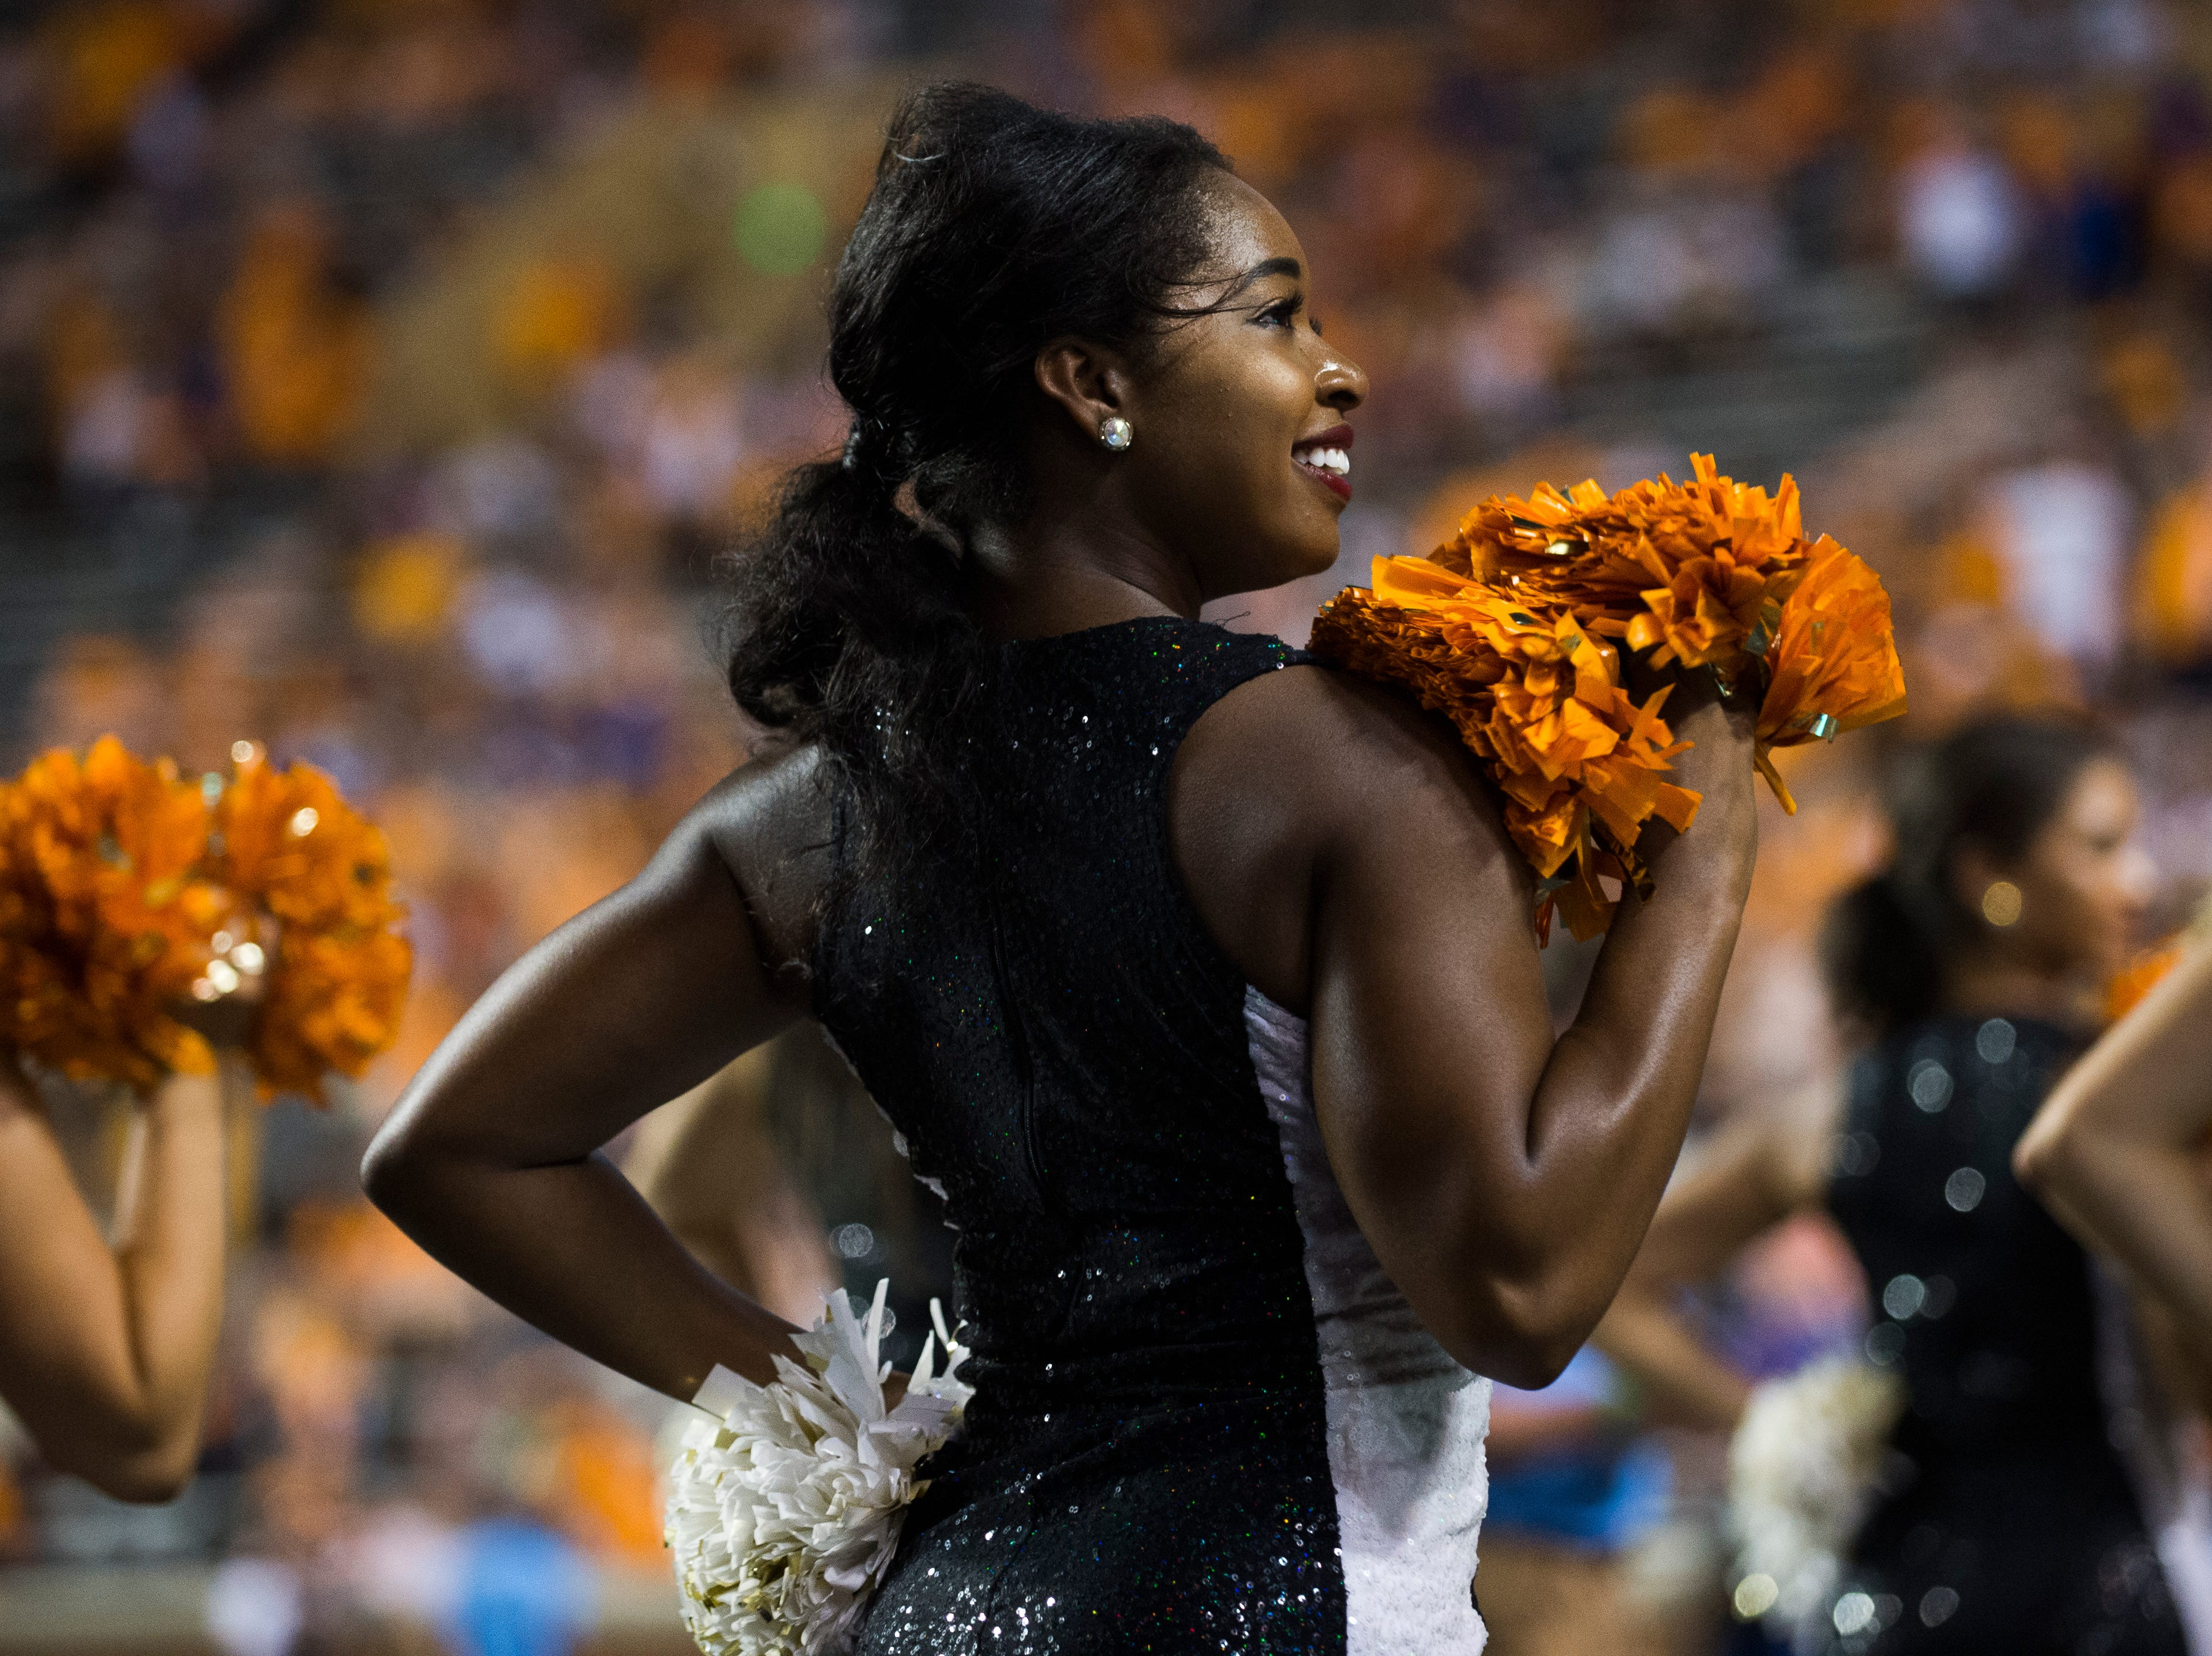 A Tennessee dance team member performs during a game between Tennessee and Florida at Neyland Stadium in Knoxville, Tennessee on Saturday, September 22, 2018.